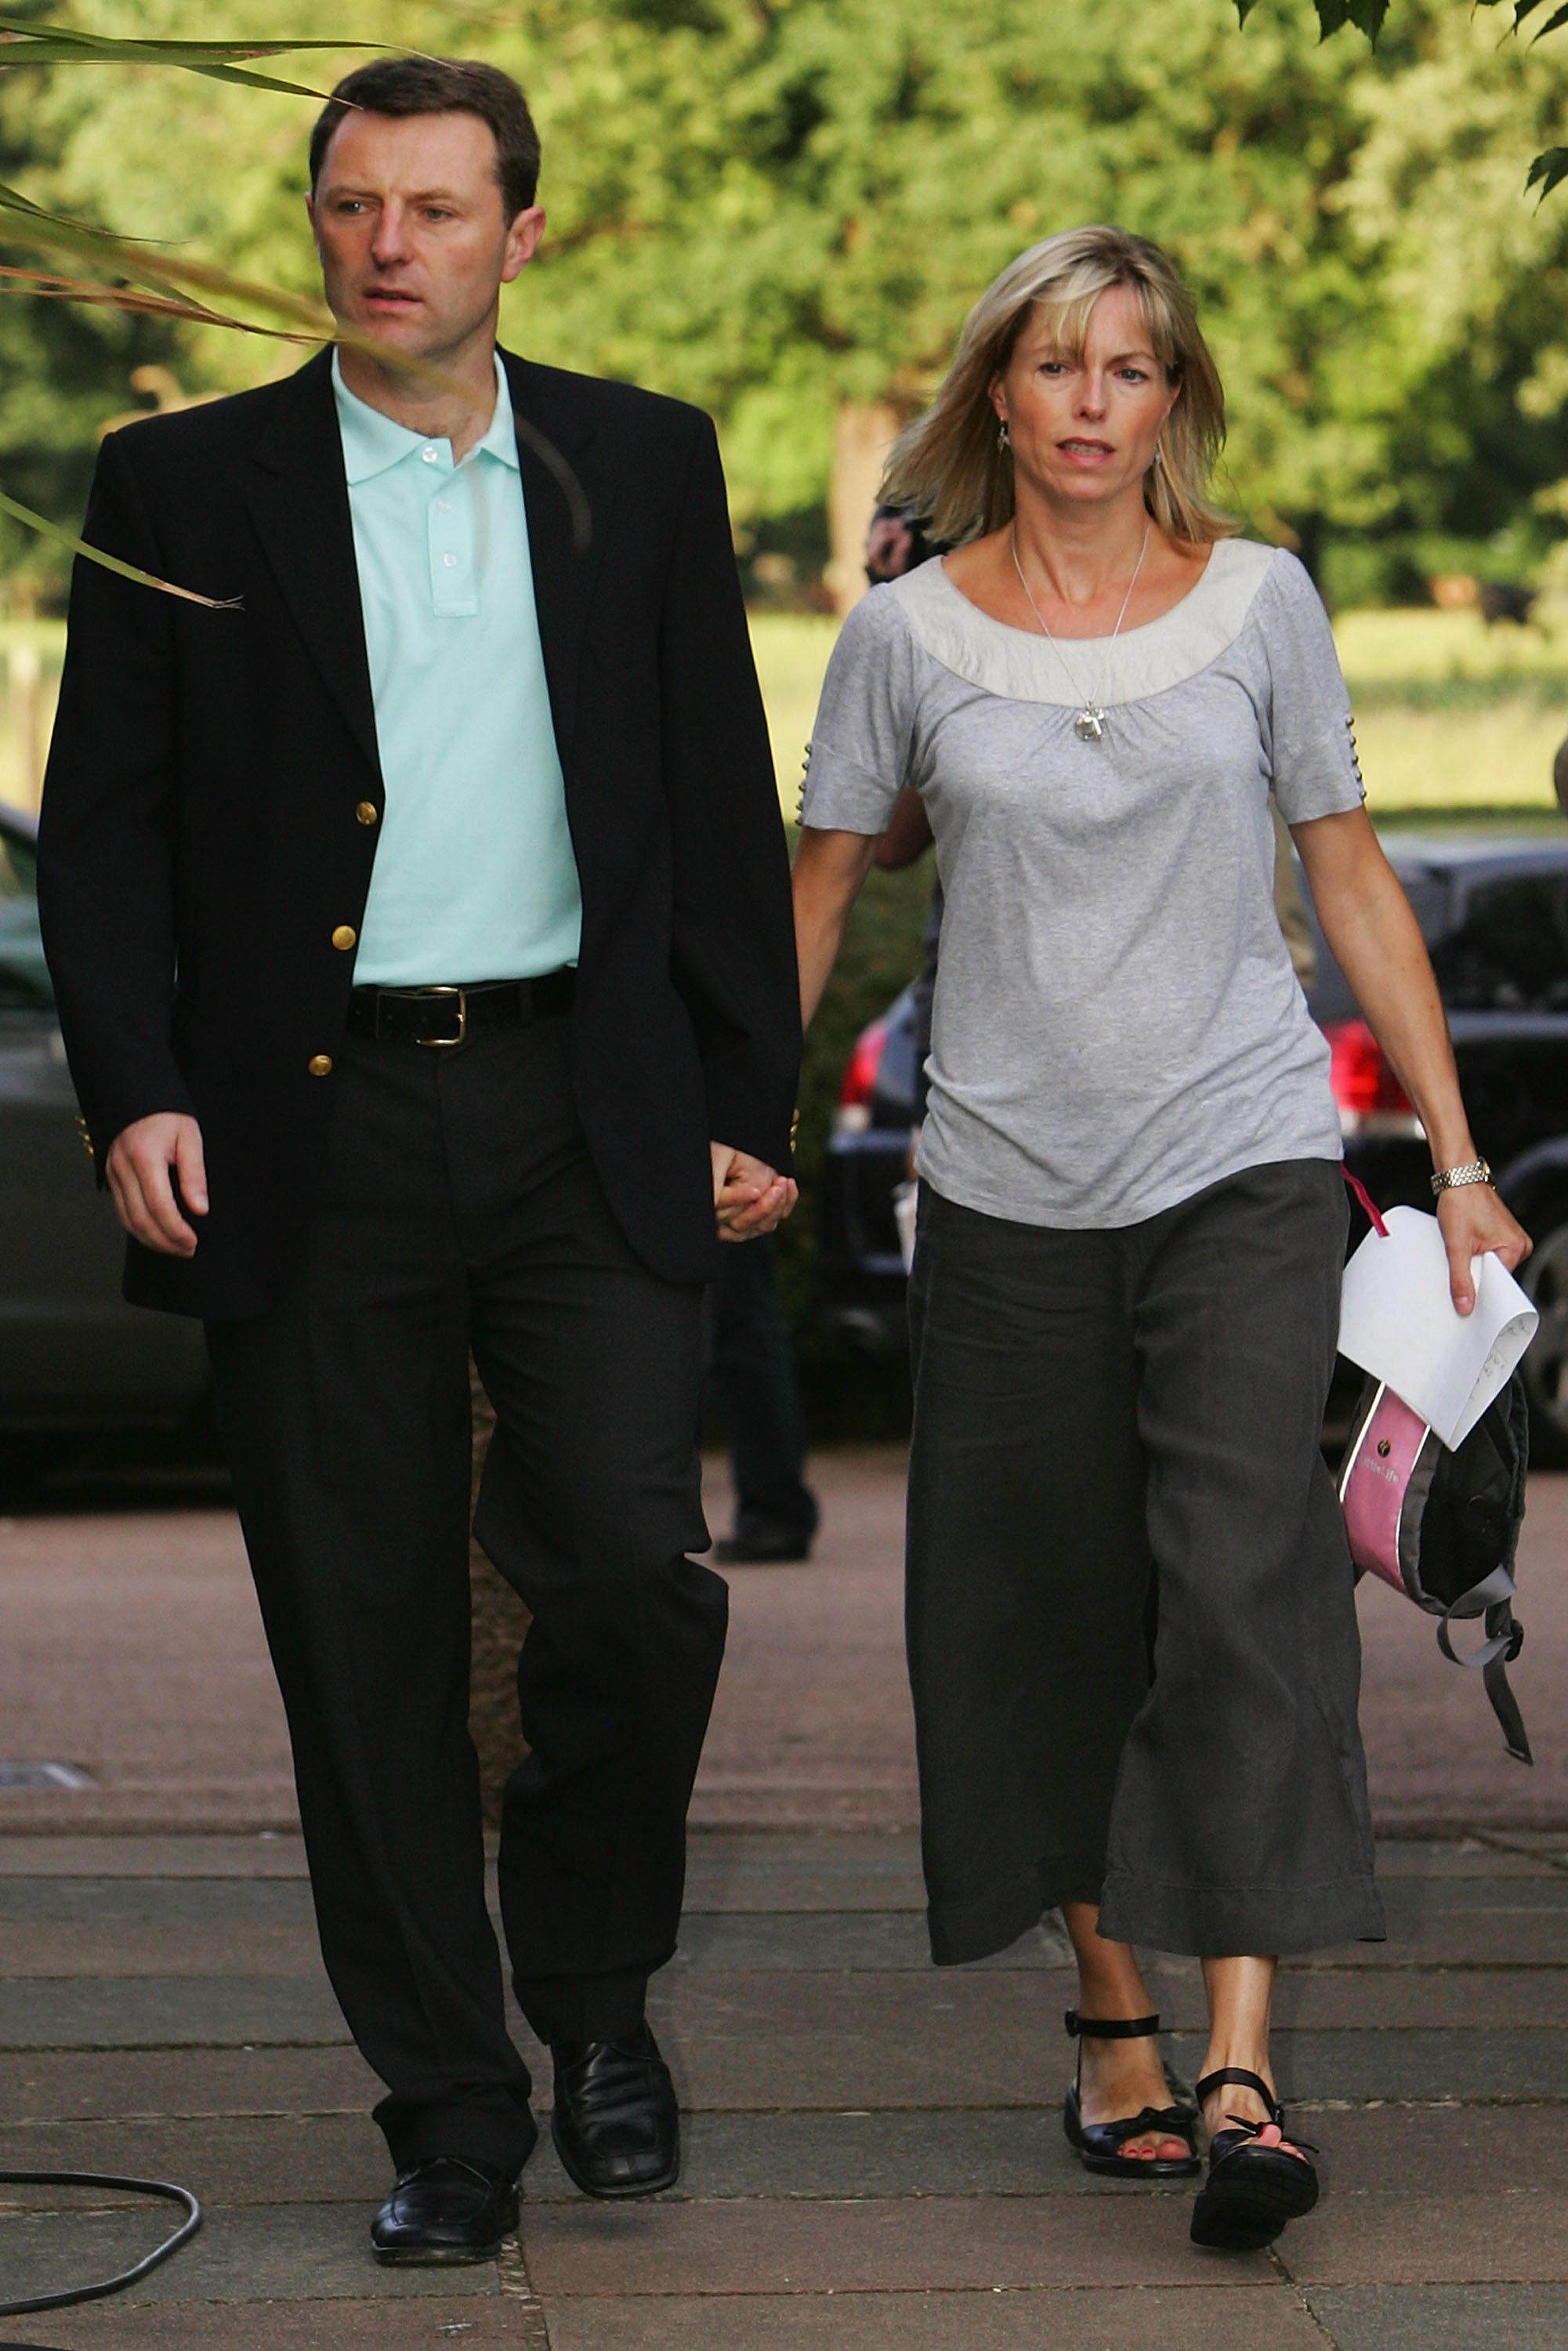 Kate and Gerry were cleared of their suspect status in mid-2008 (Source: Matthew Lewis/Getty Images)